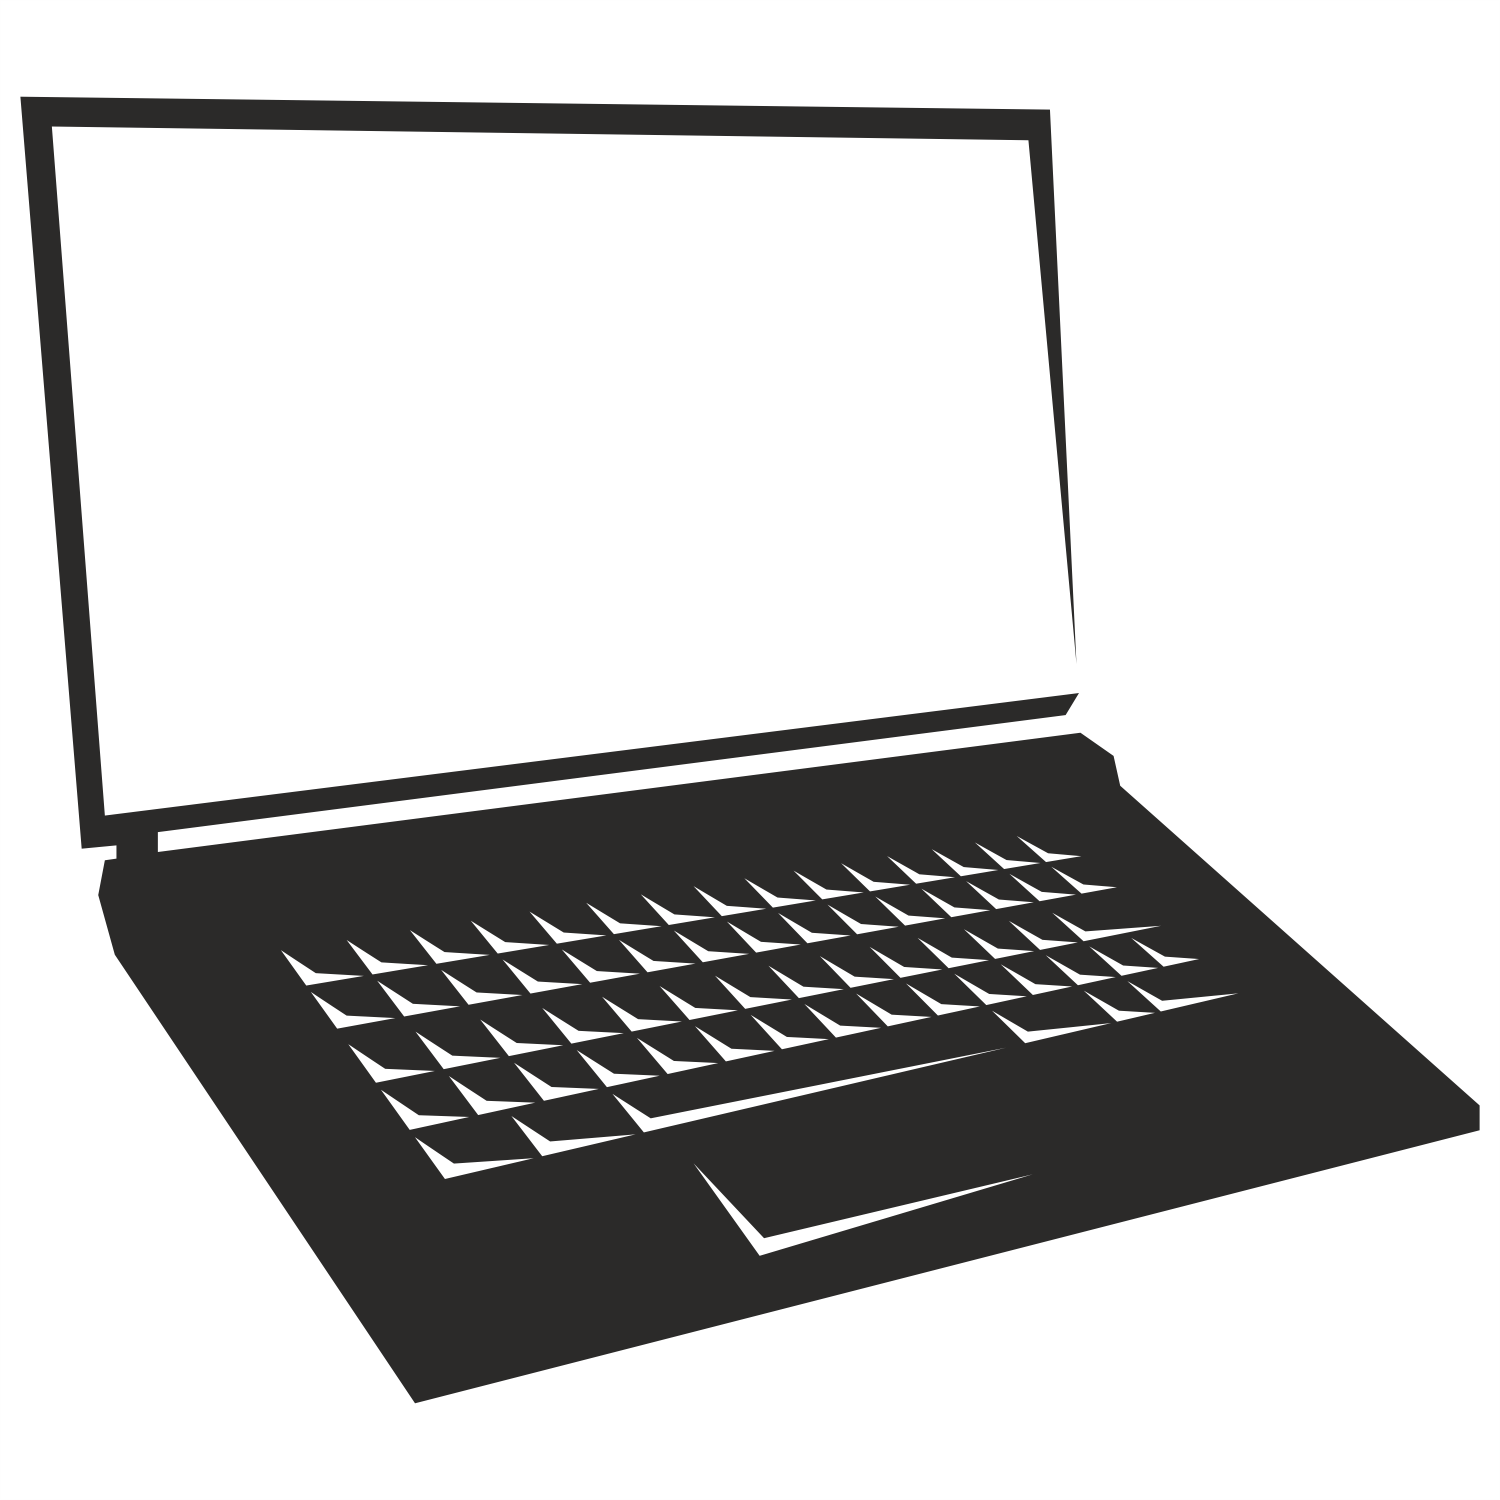 Laptop PNG Black And White - 44457